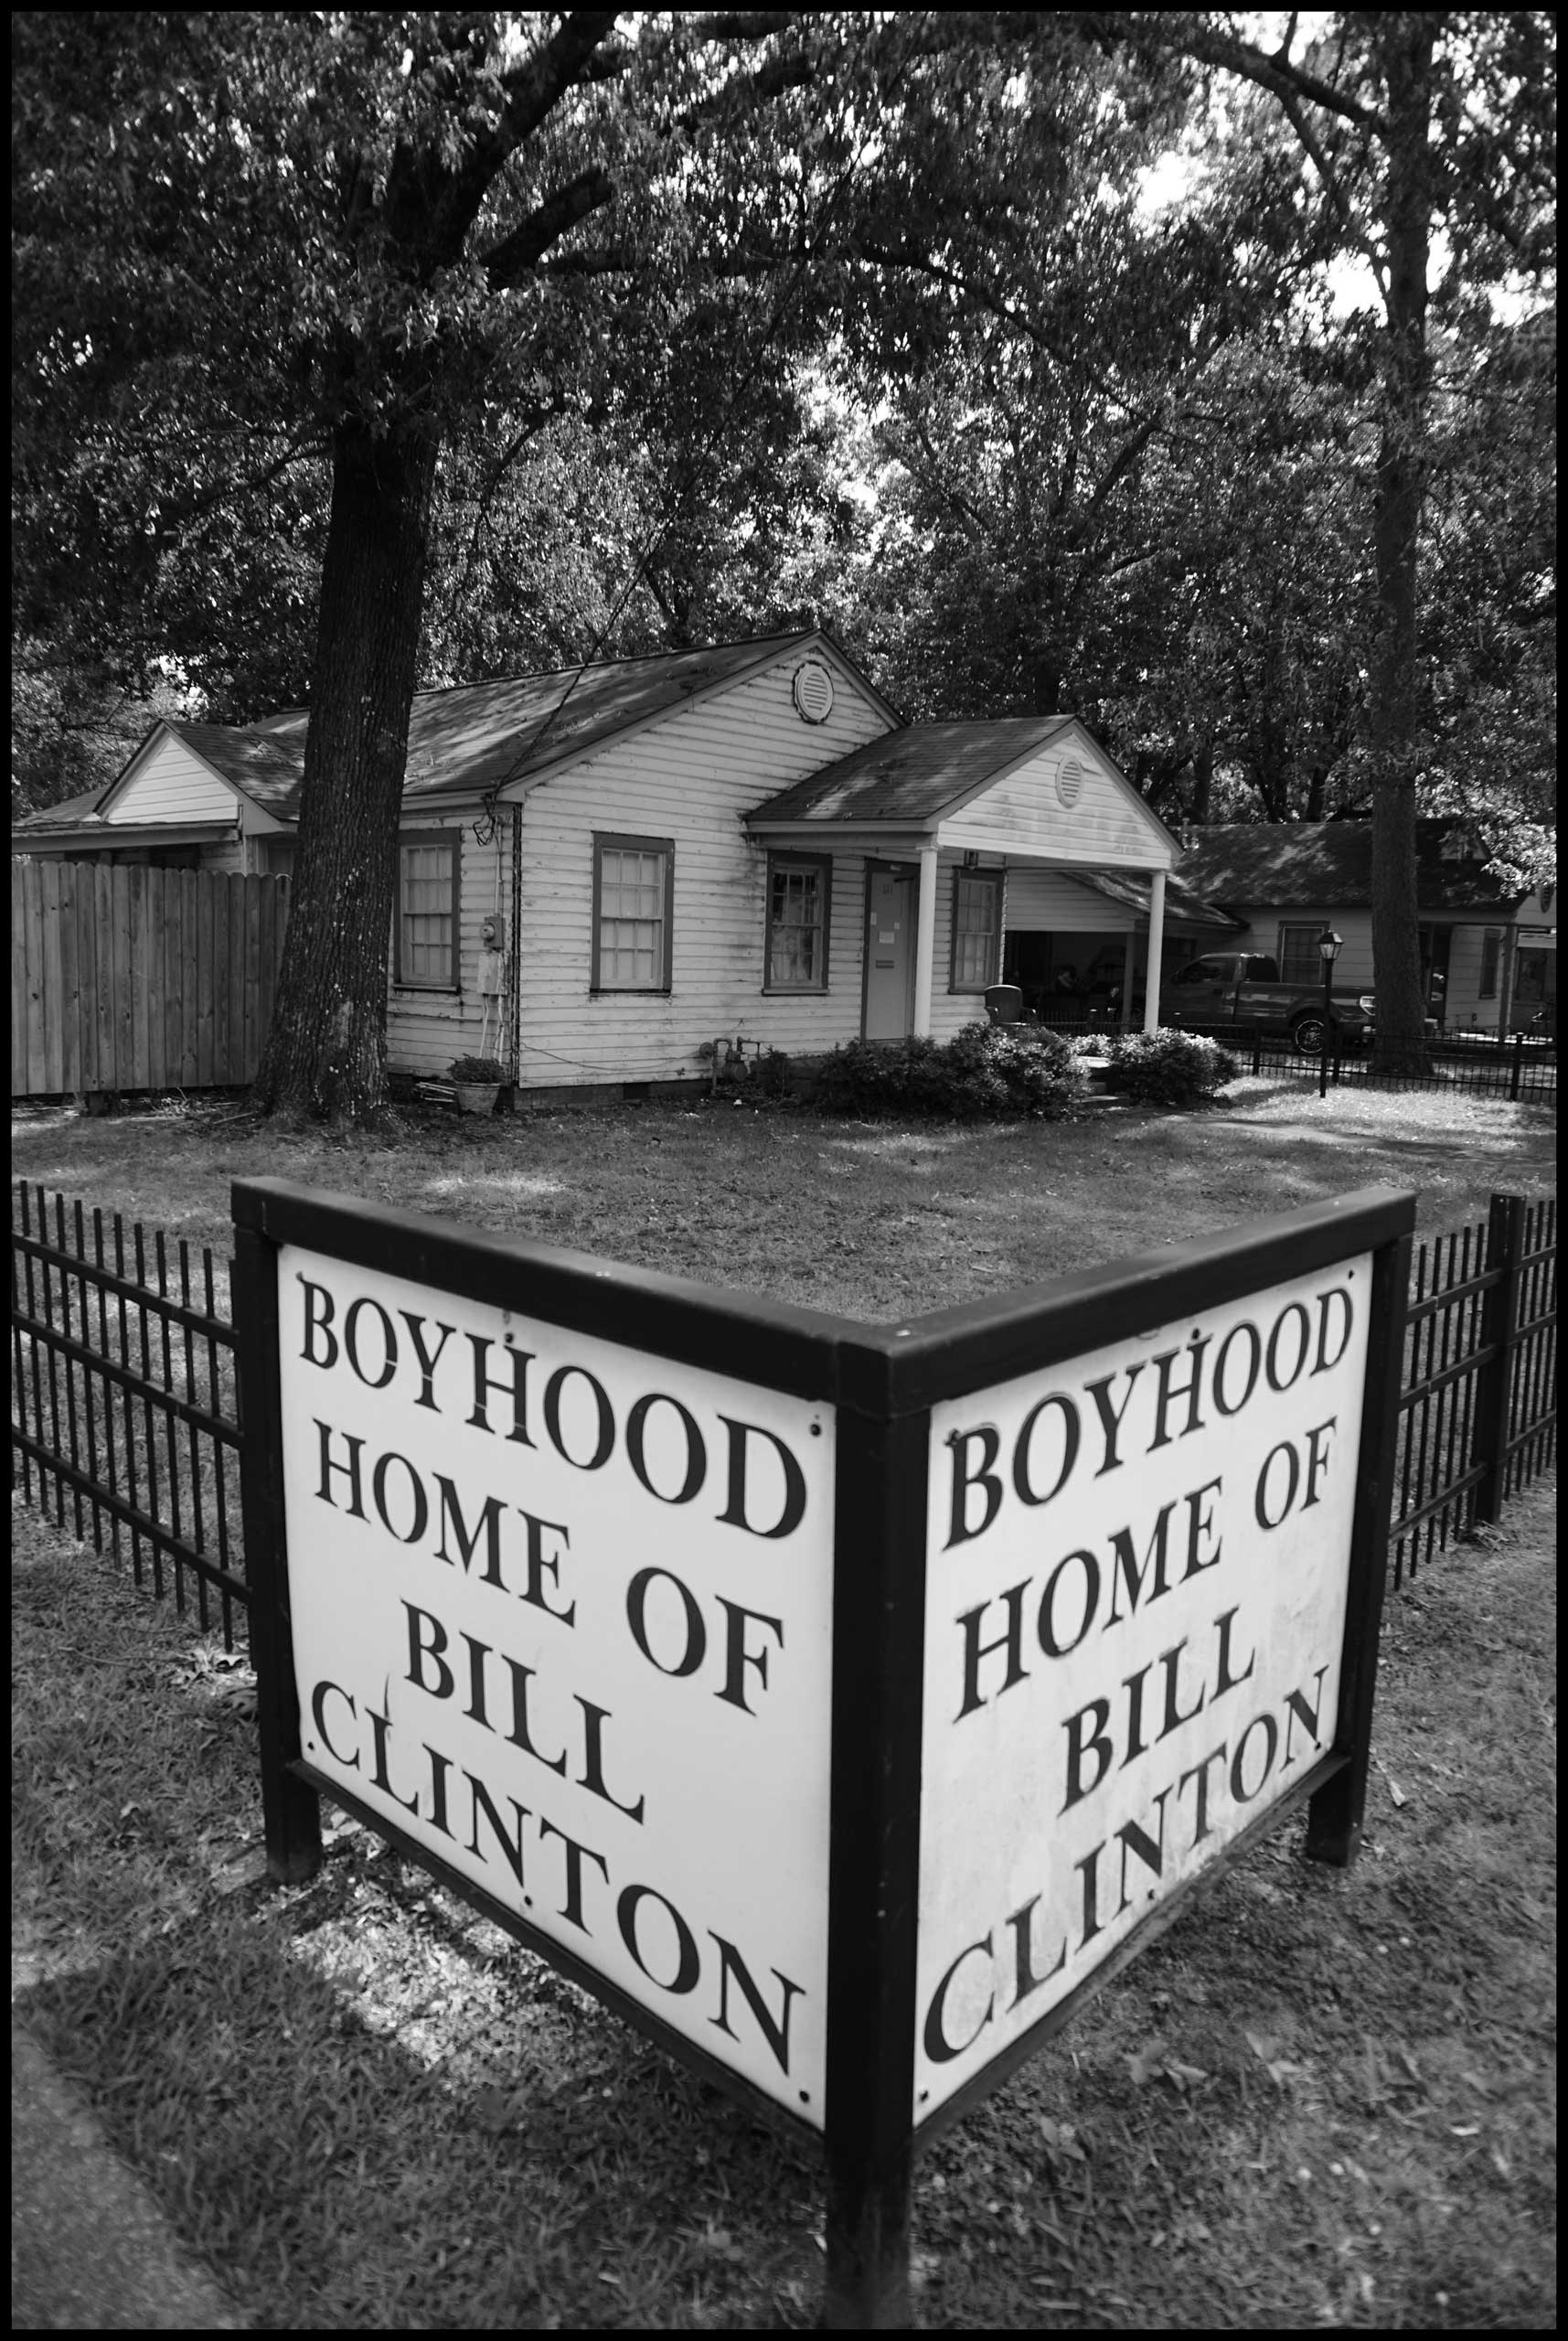 The house that Bill Clinton grew up in. Hope, Ark. 2016.